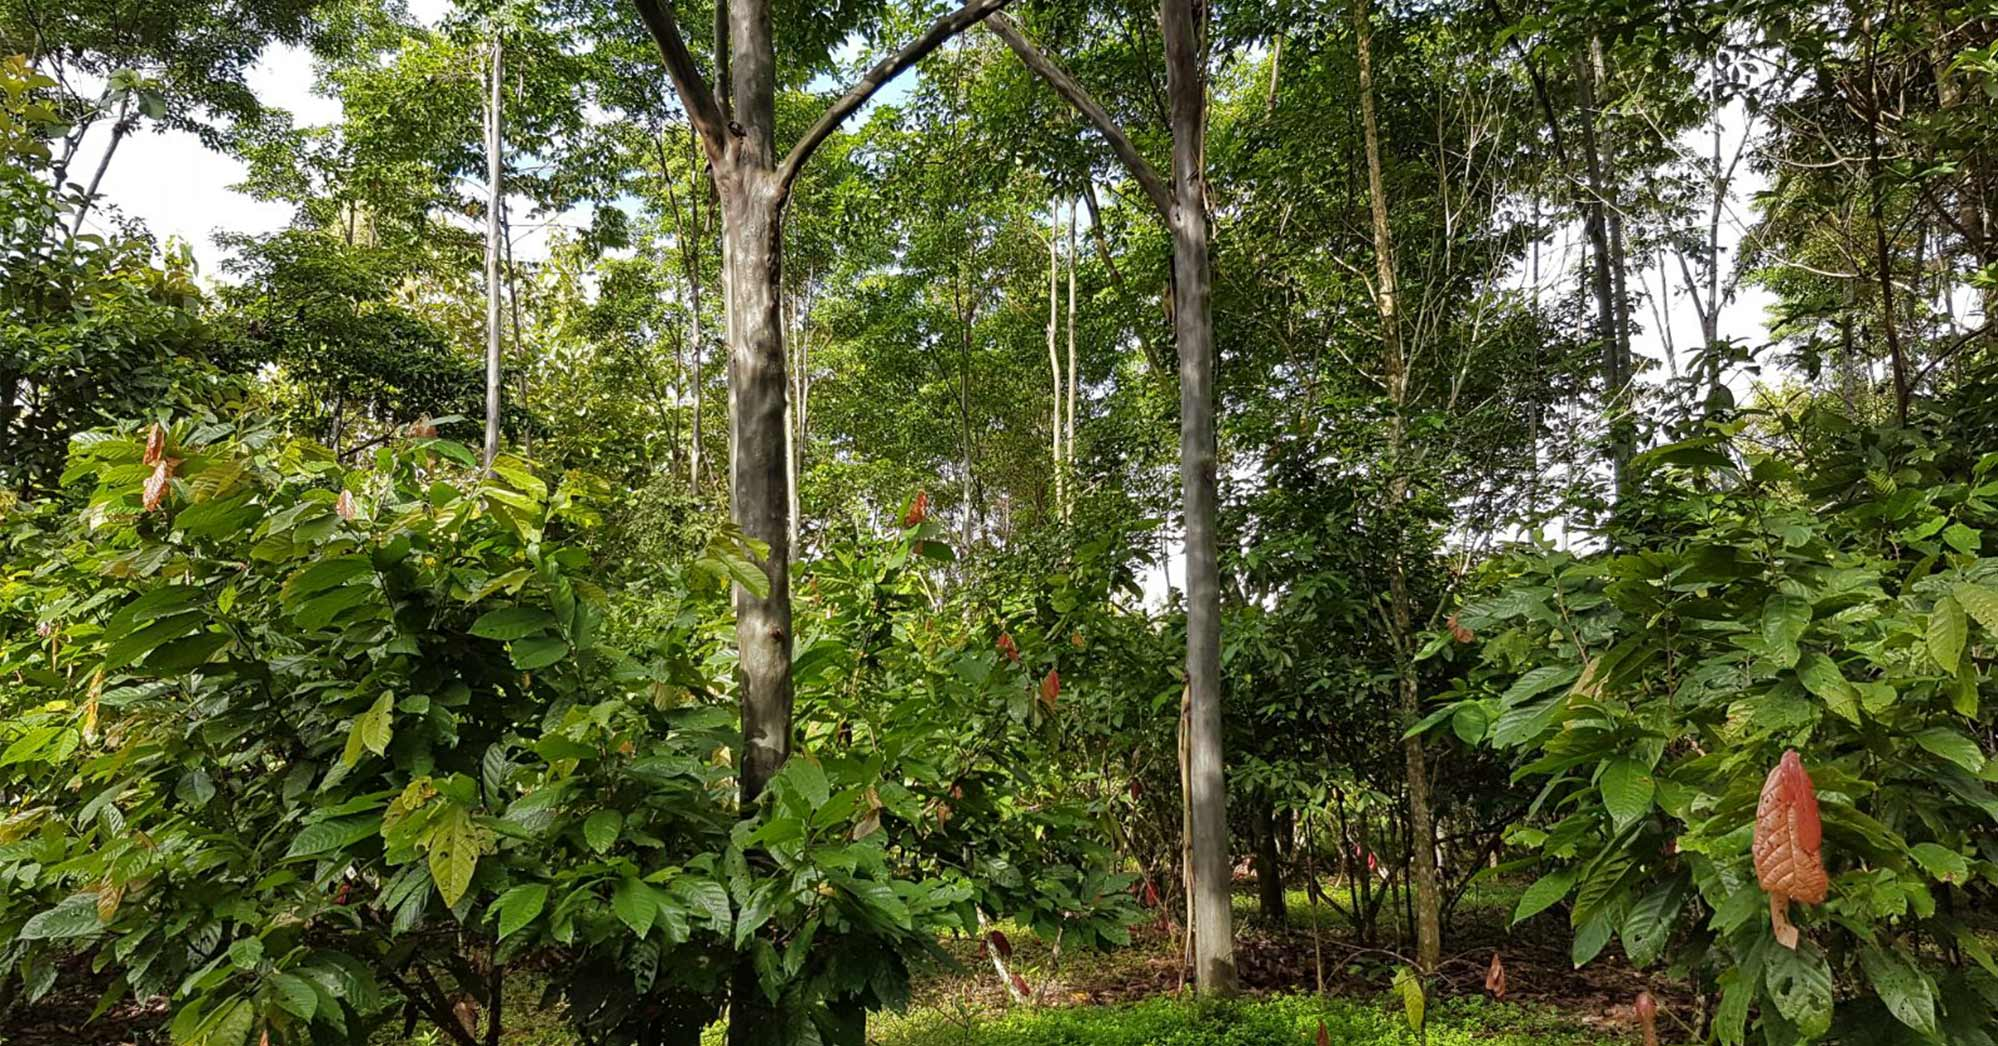 agroforestry at landscape level